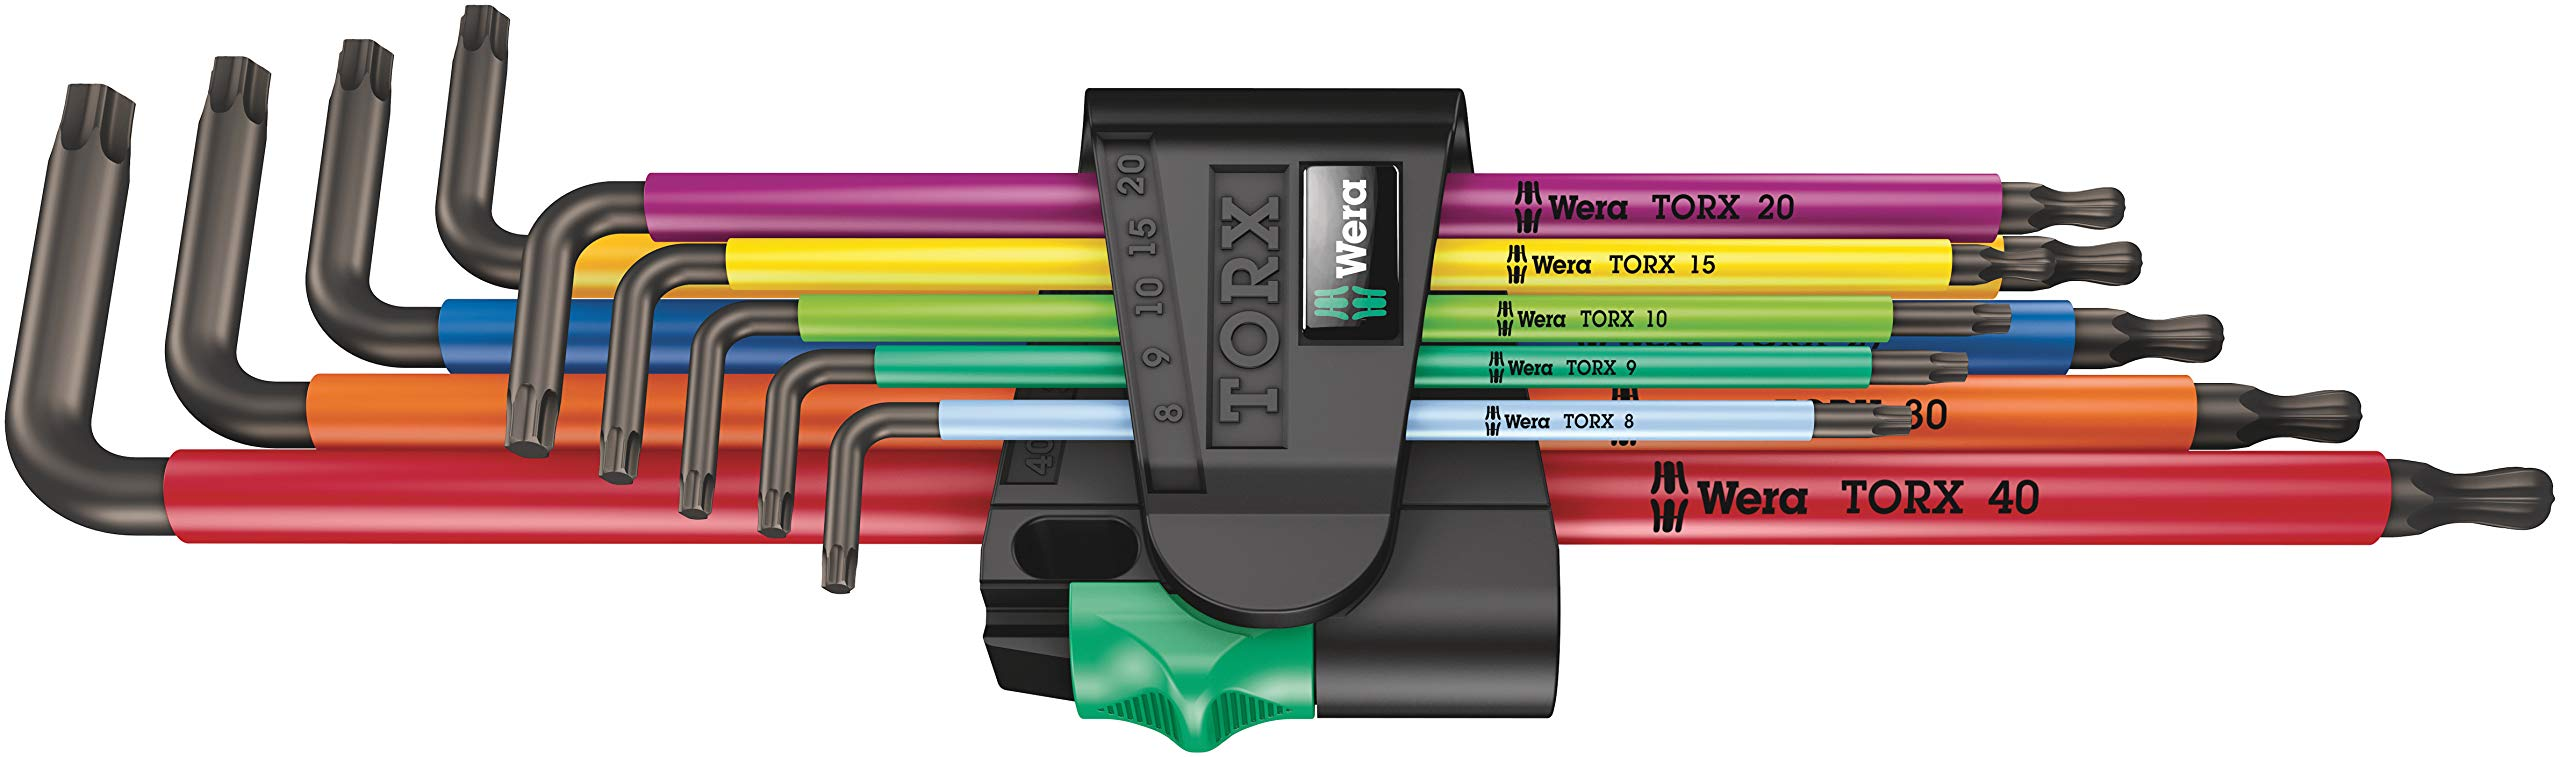 Wera 05024480001 967/9 TX XL Multicolor 1 L-Key Set, TORX, Long, (Pack of 9) by Wera